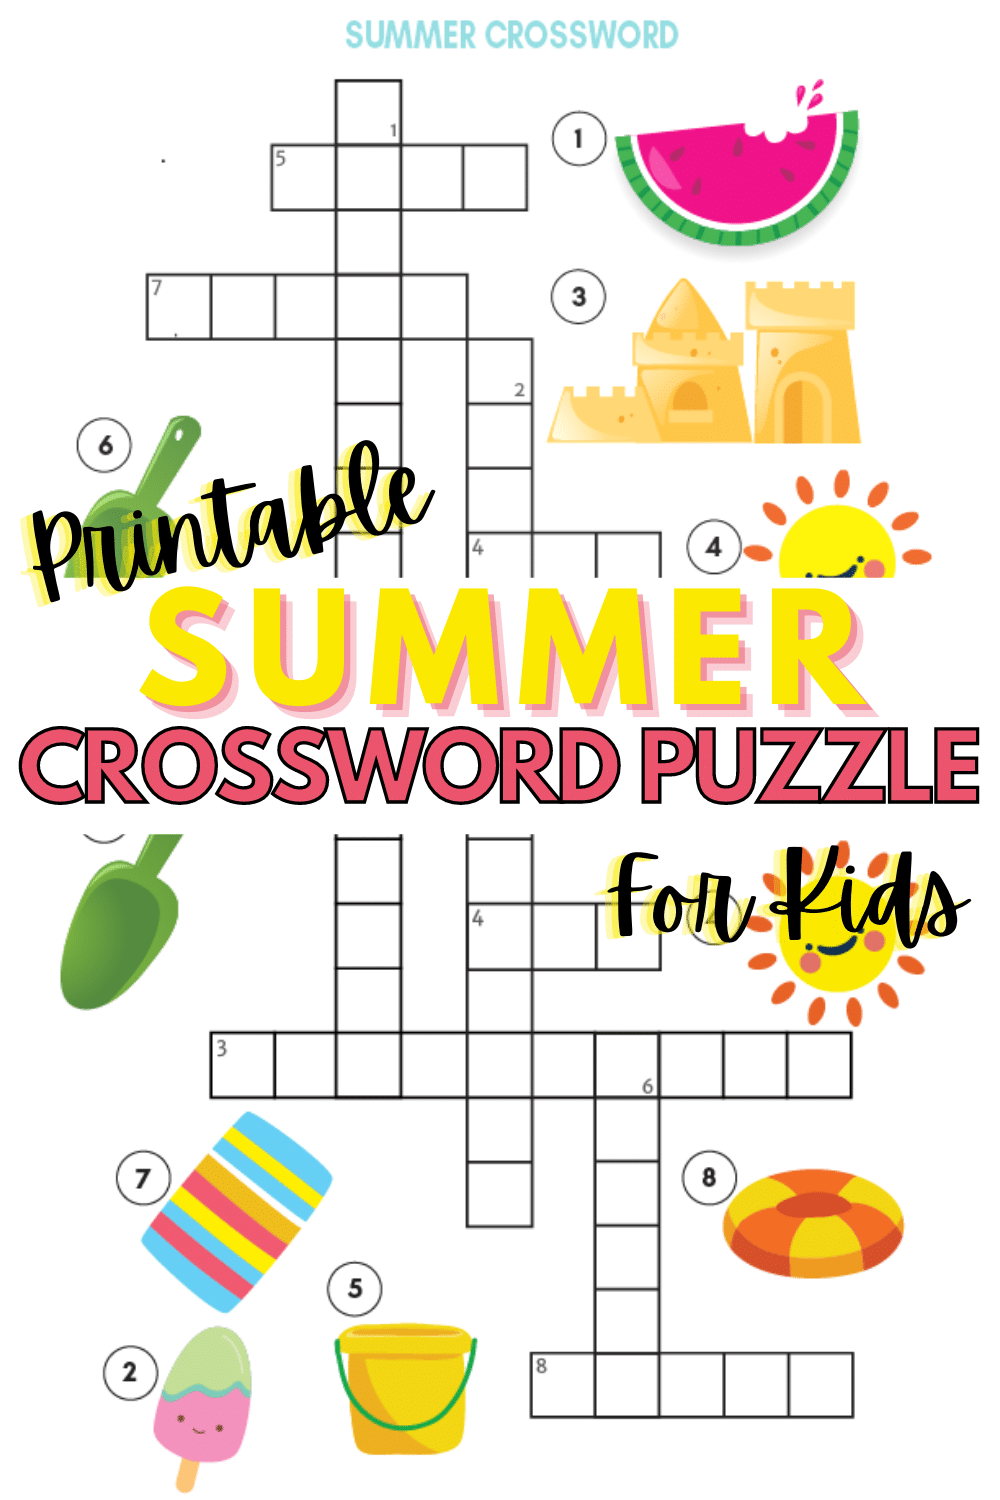 This printable summer crossword puzzle for kids is perfect for hot summer days when going outdoors isn't an option. Easy puzzle that kids will love. #crosswordpuzzles #printables #summer via @wondermomwannab